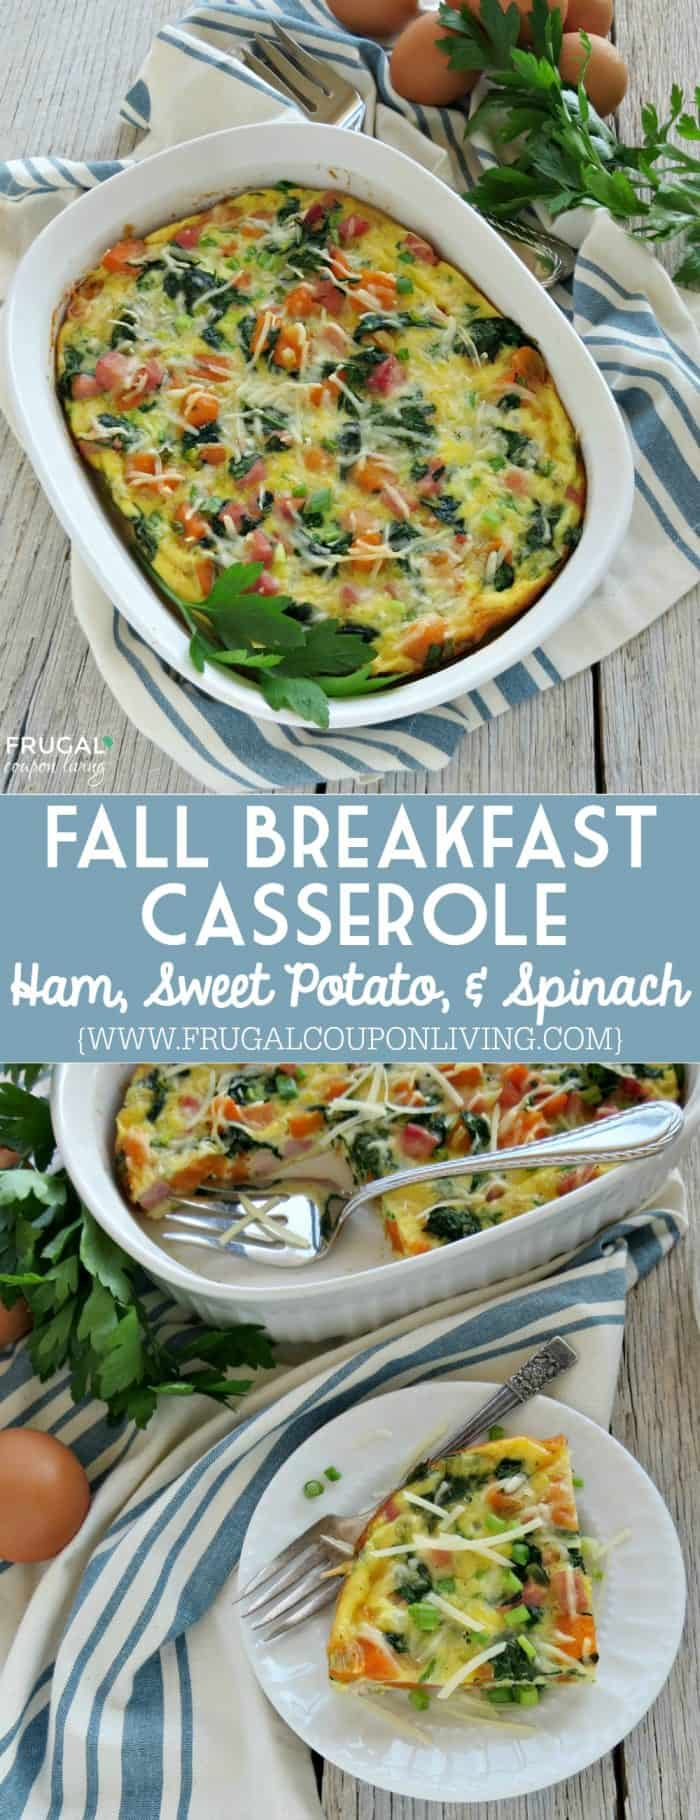 fall-breakfast-casserole-frugal-coupon-living-long